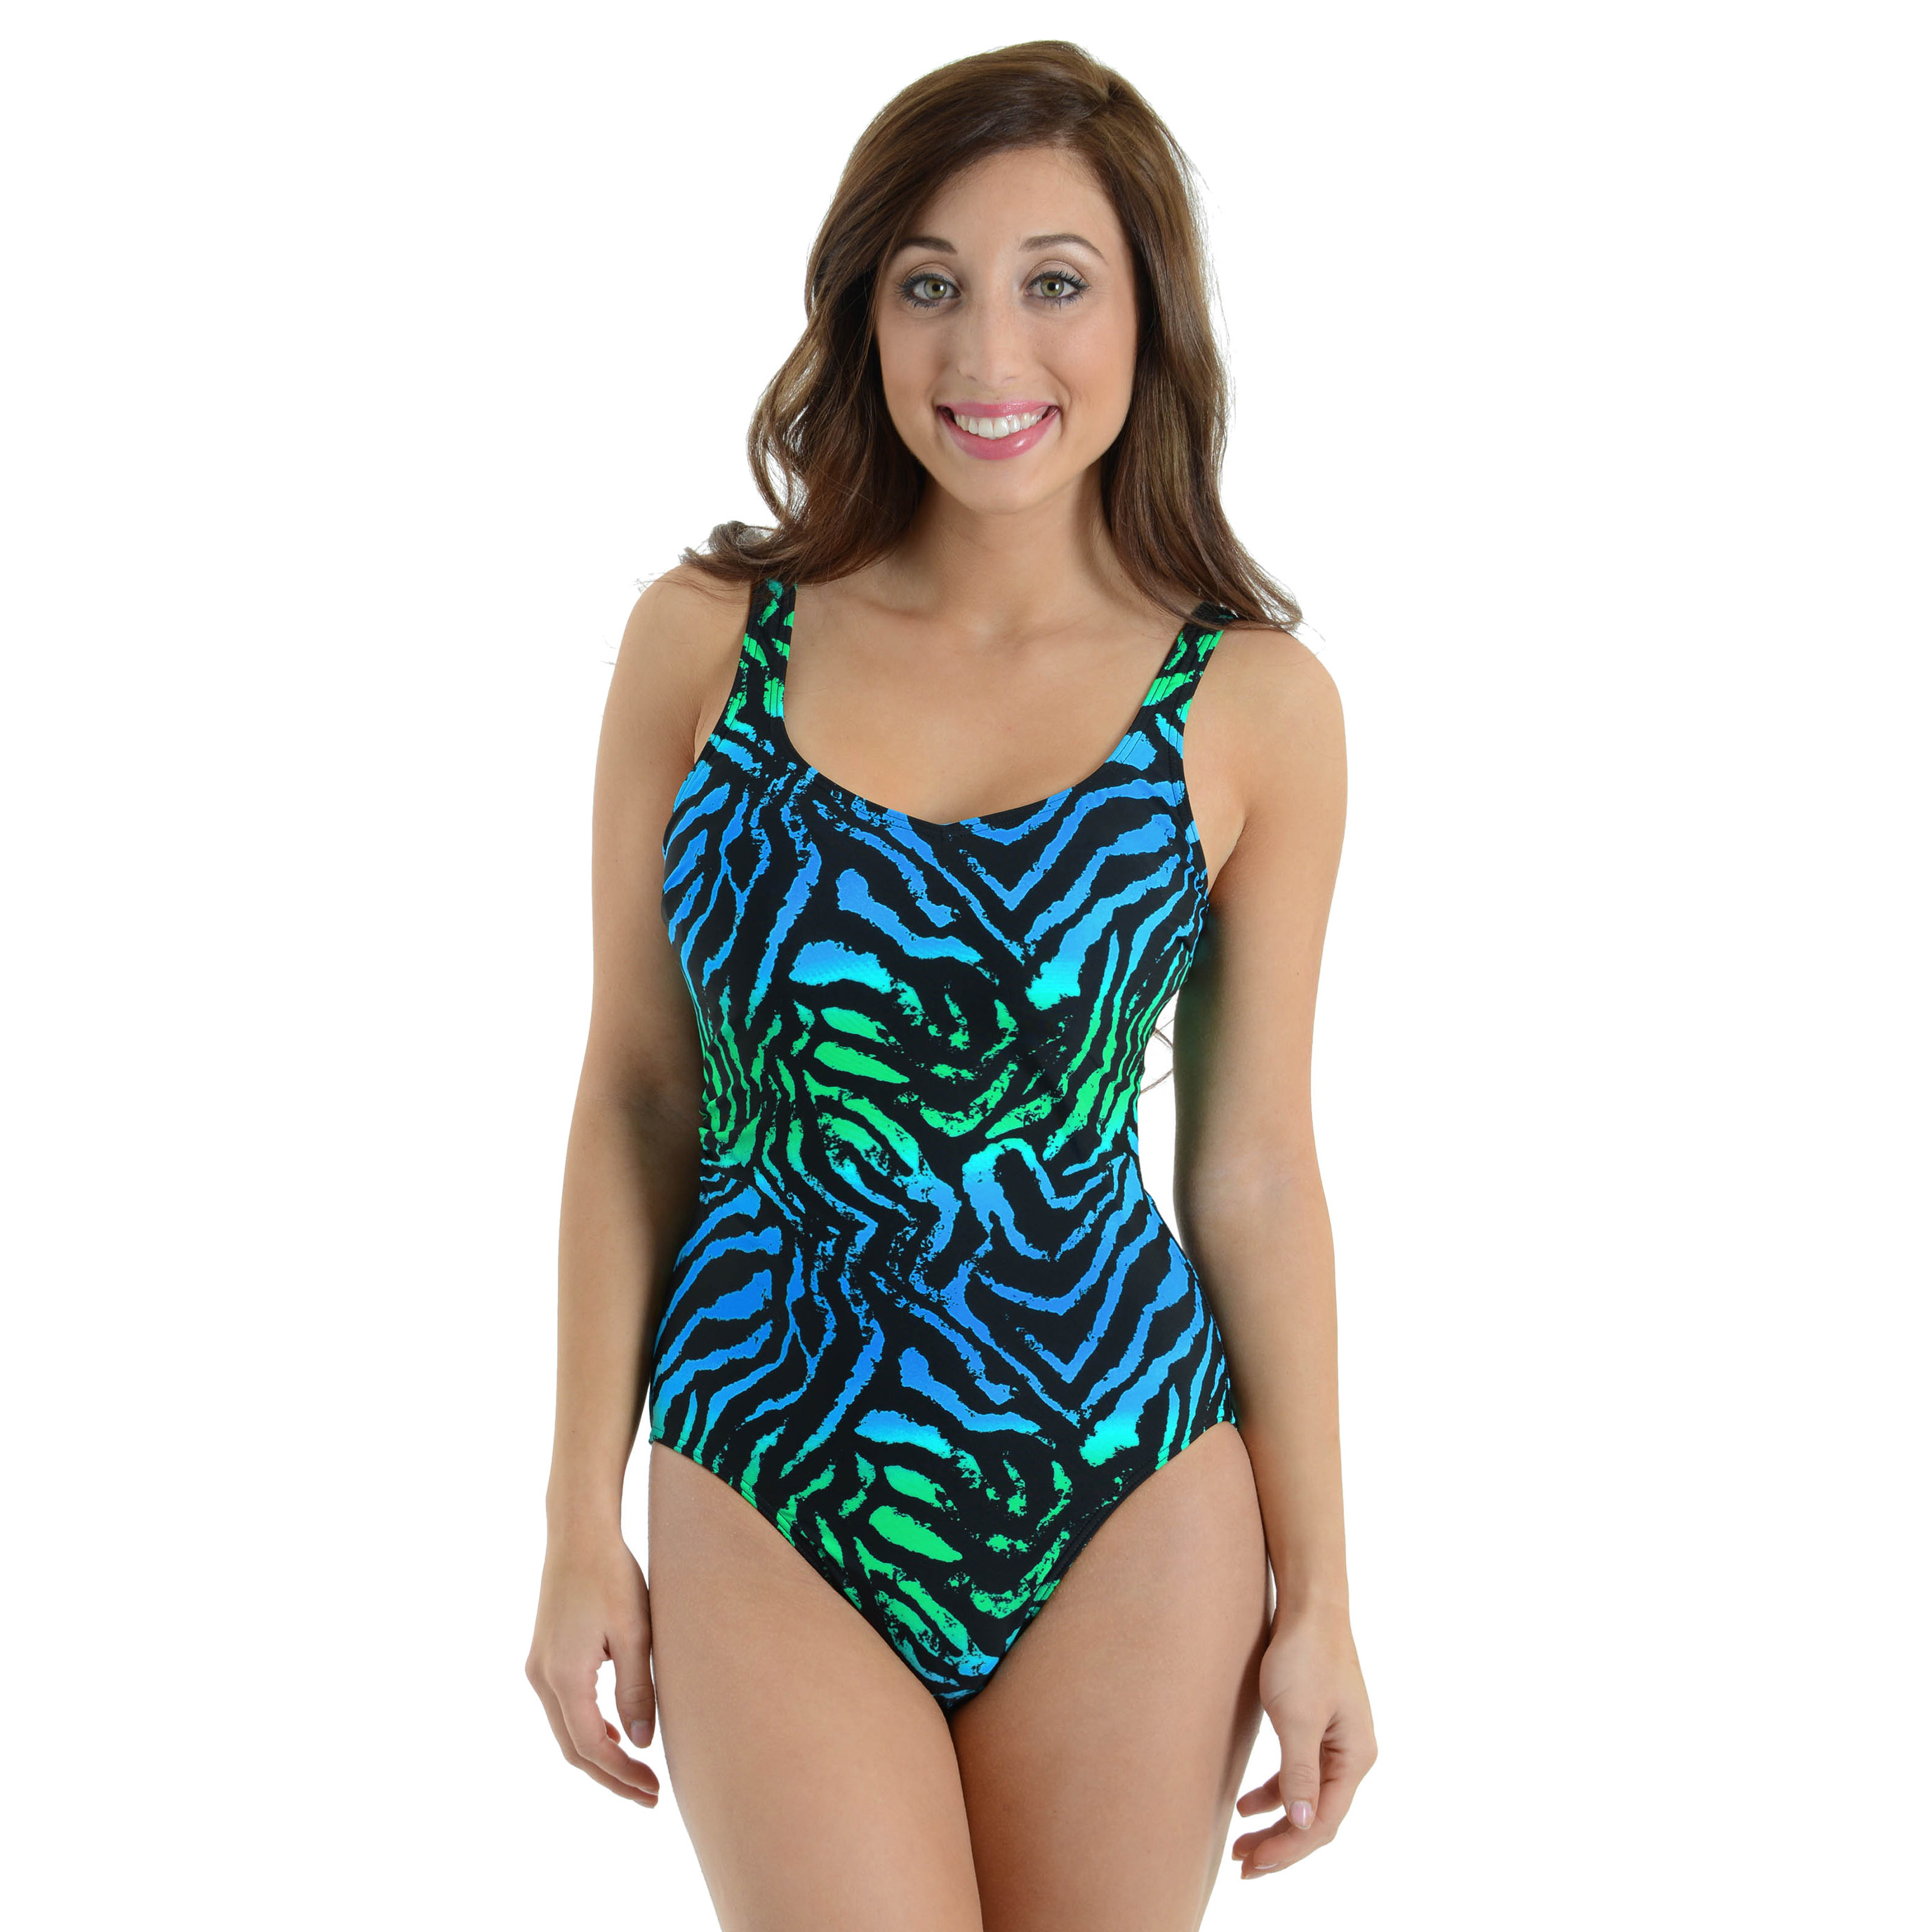 Caribbean Sand Women's Blue Green Zebra Print Bathing Suit 1 Piece Swimsuit